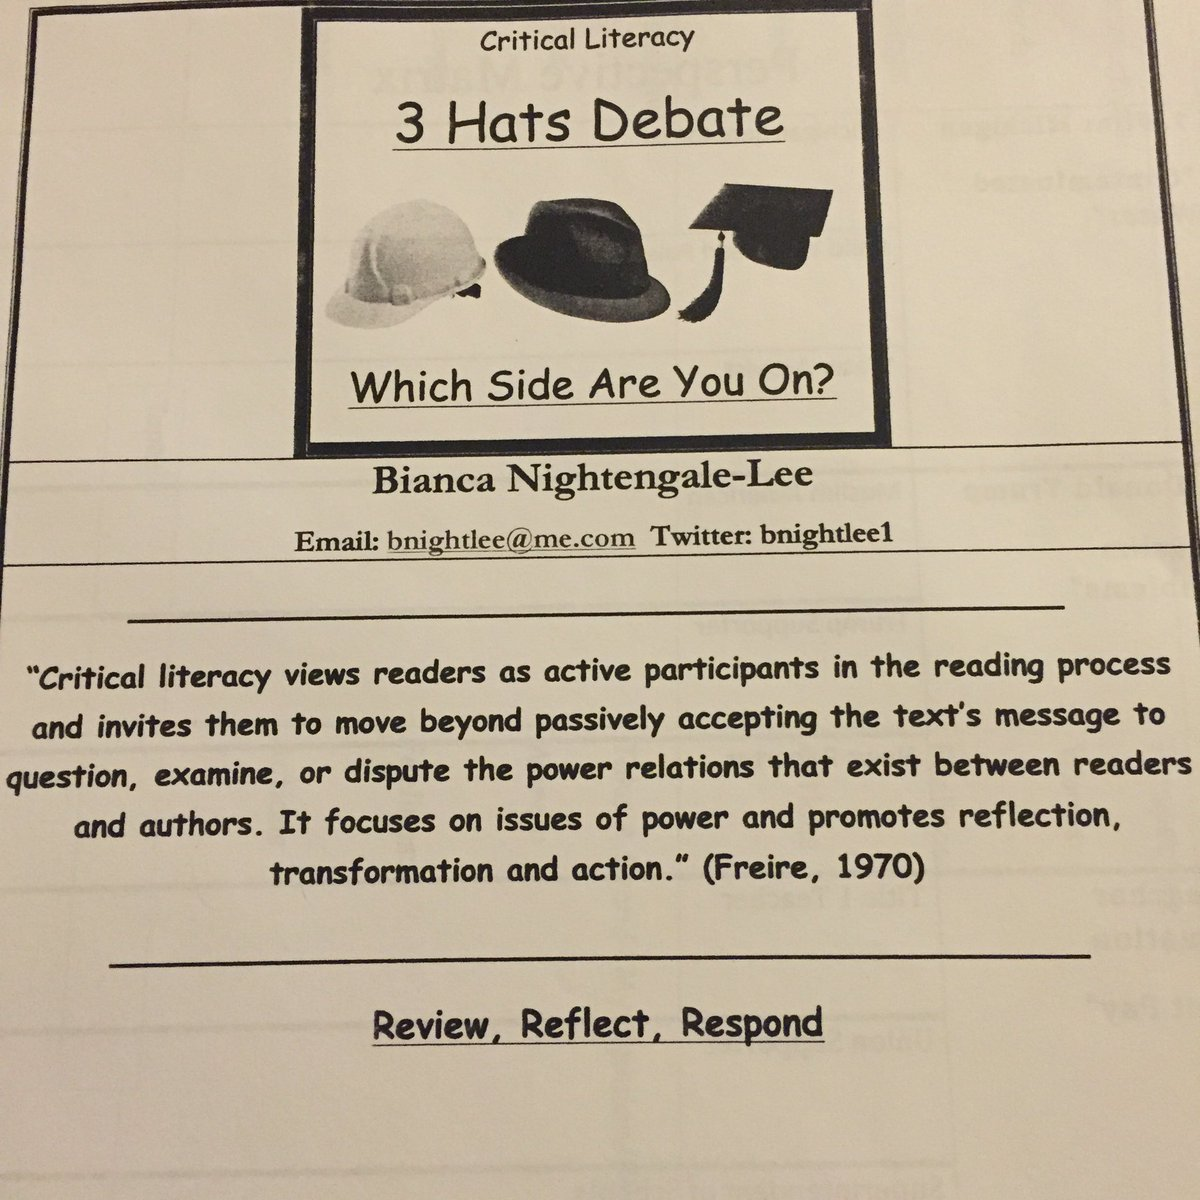 Today lets discuss the 3 Hats Debate critical literacy@KCTE_LA which side are you on?#kcte2016 https://t.co/8hW21H0MMa